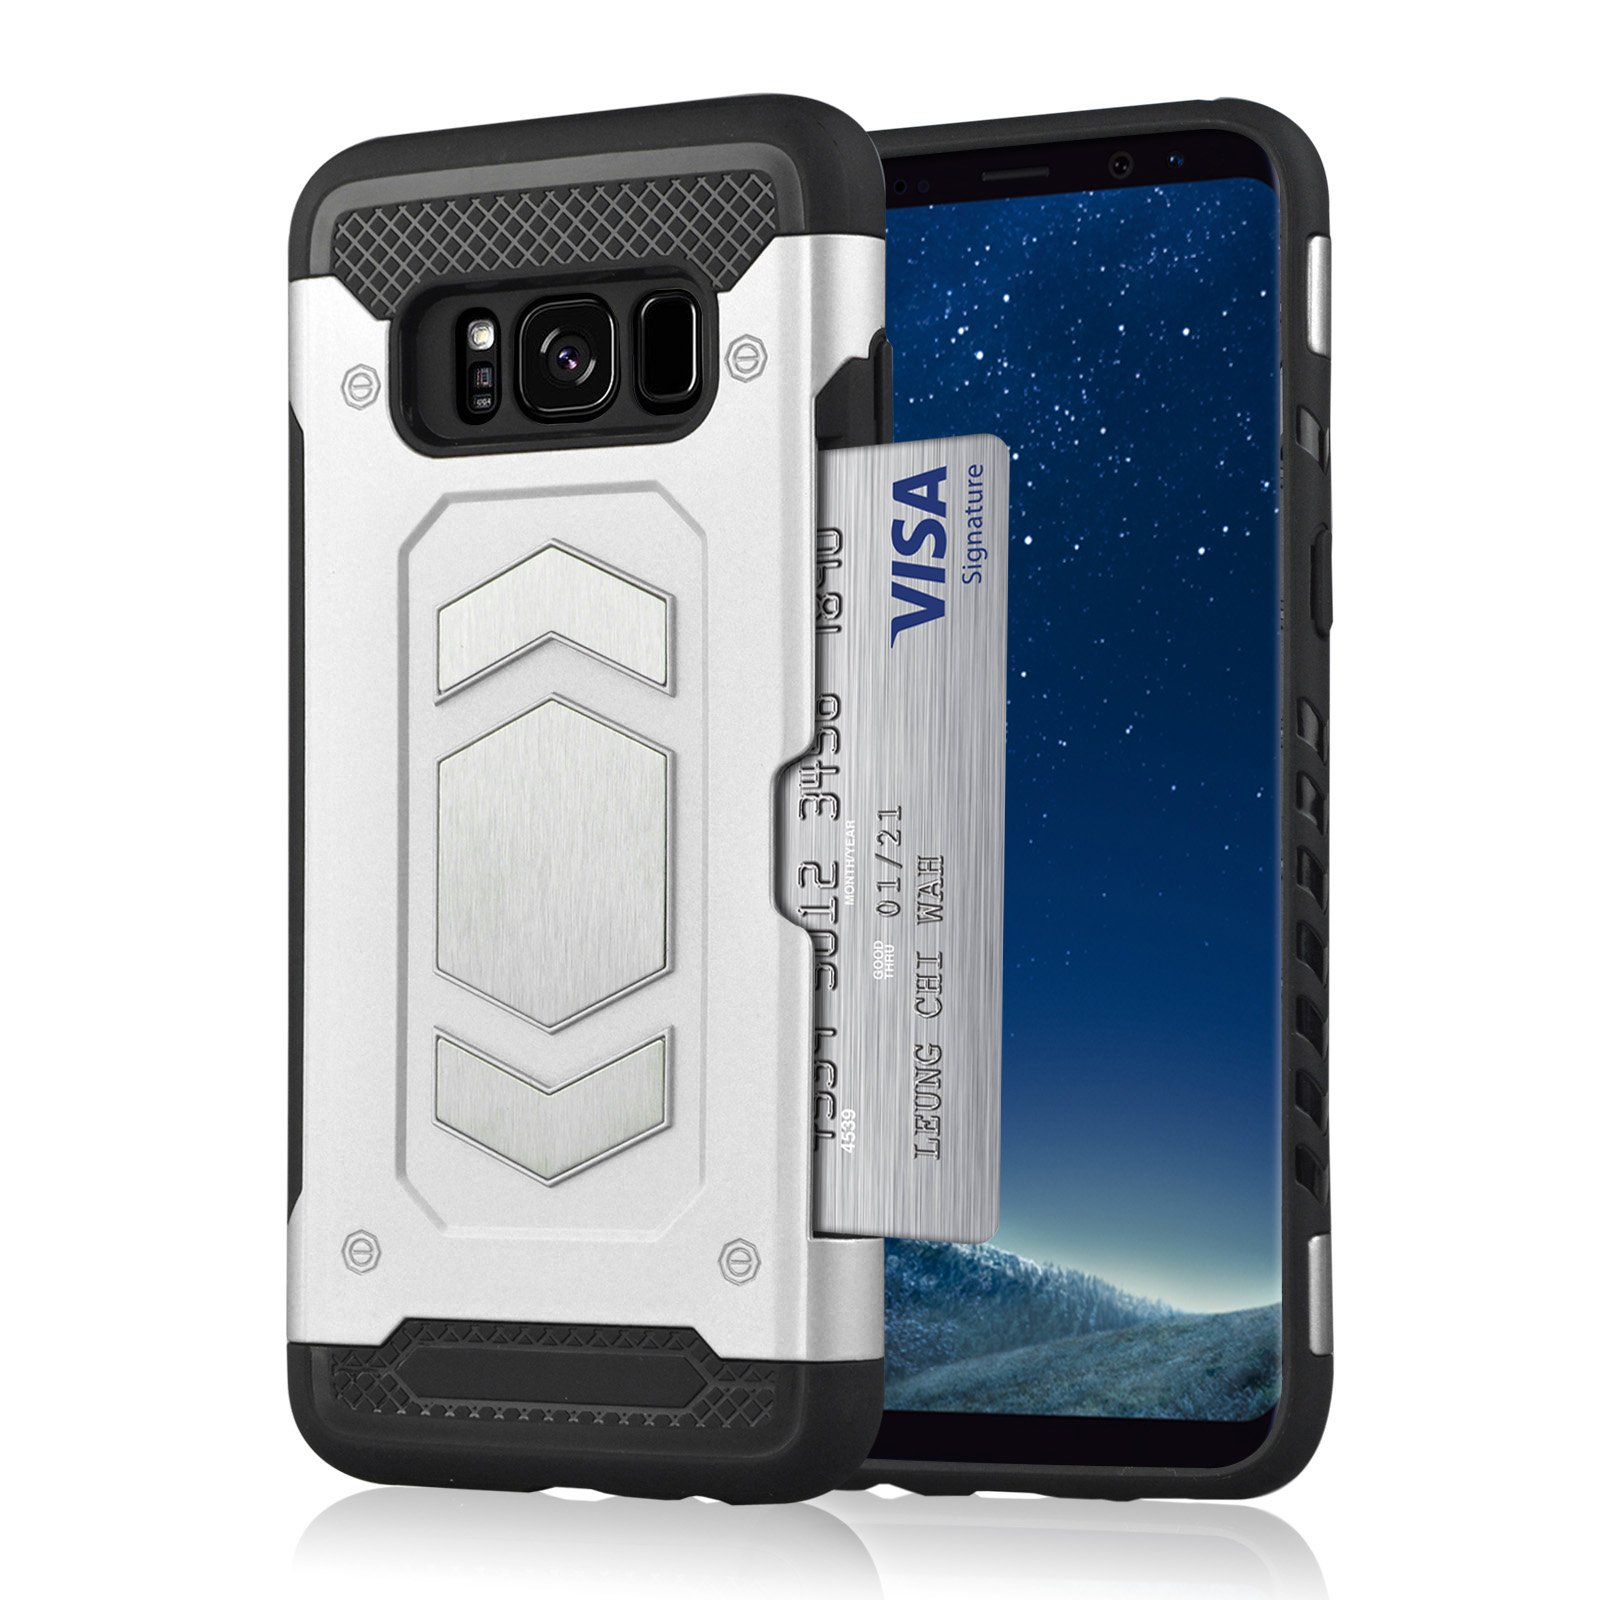 Samsung Galaxy S8 Plus/S8 Wallet Case, Slim Armor Shockproof Heavy Duty Protection Dual Layer TPU&PC Hybrid Case Cover with Card Slot Car Mount Holder Thin Case for Galaxy S8 (6, Galaxy S8 Plus) by 22miter